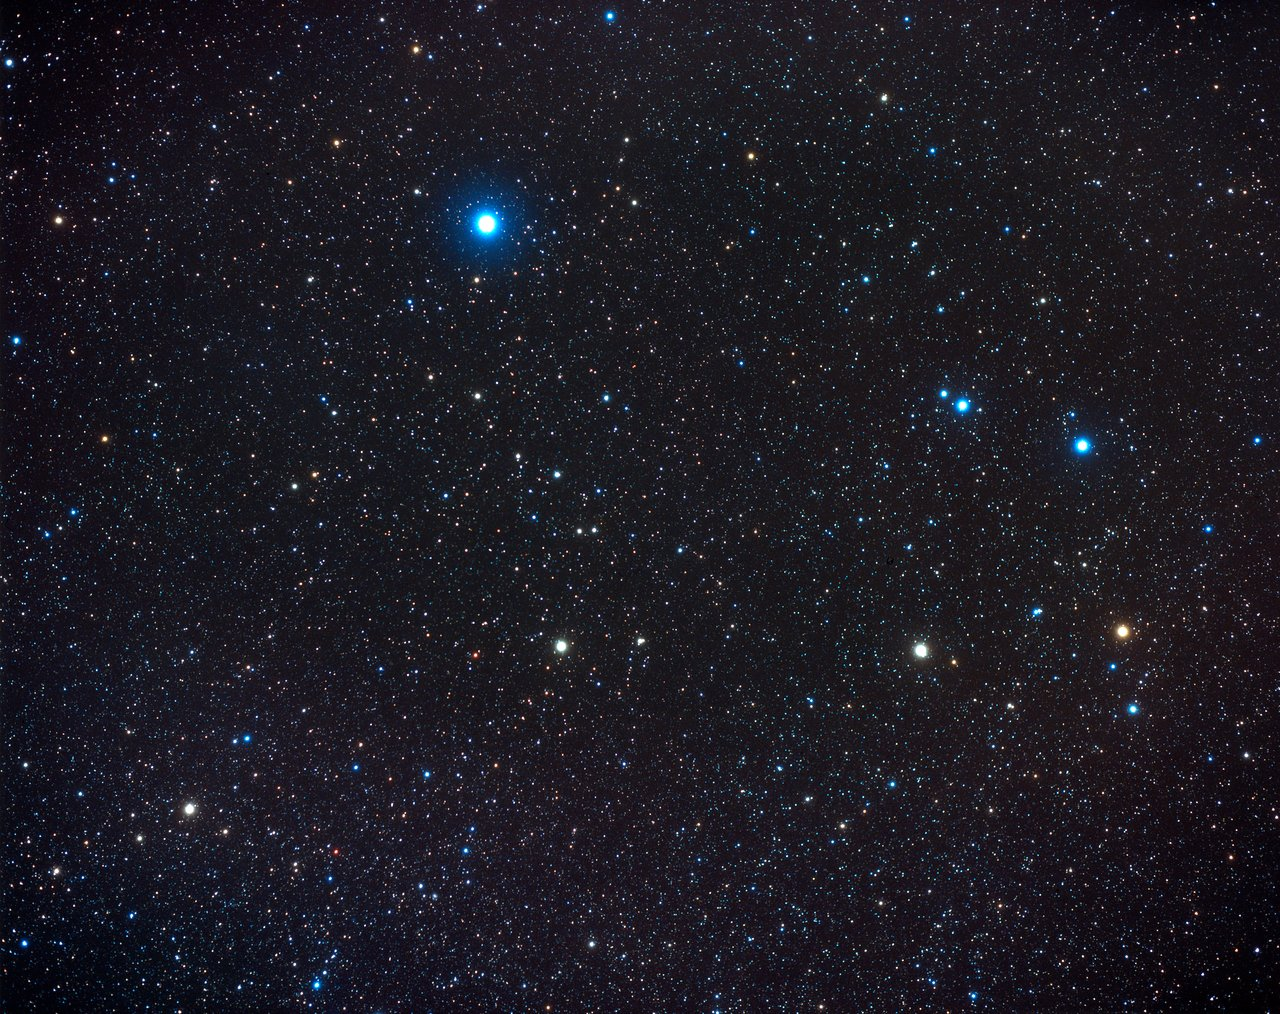 Constellation Corvus (ground-based image)